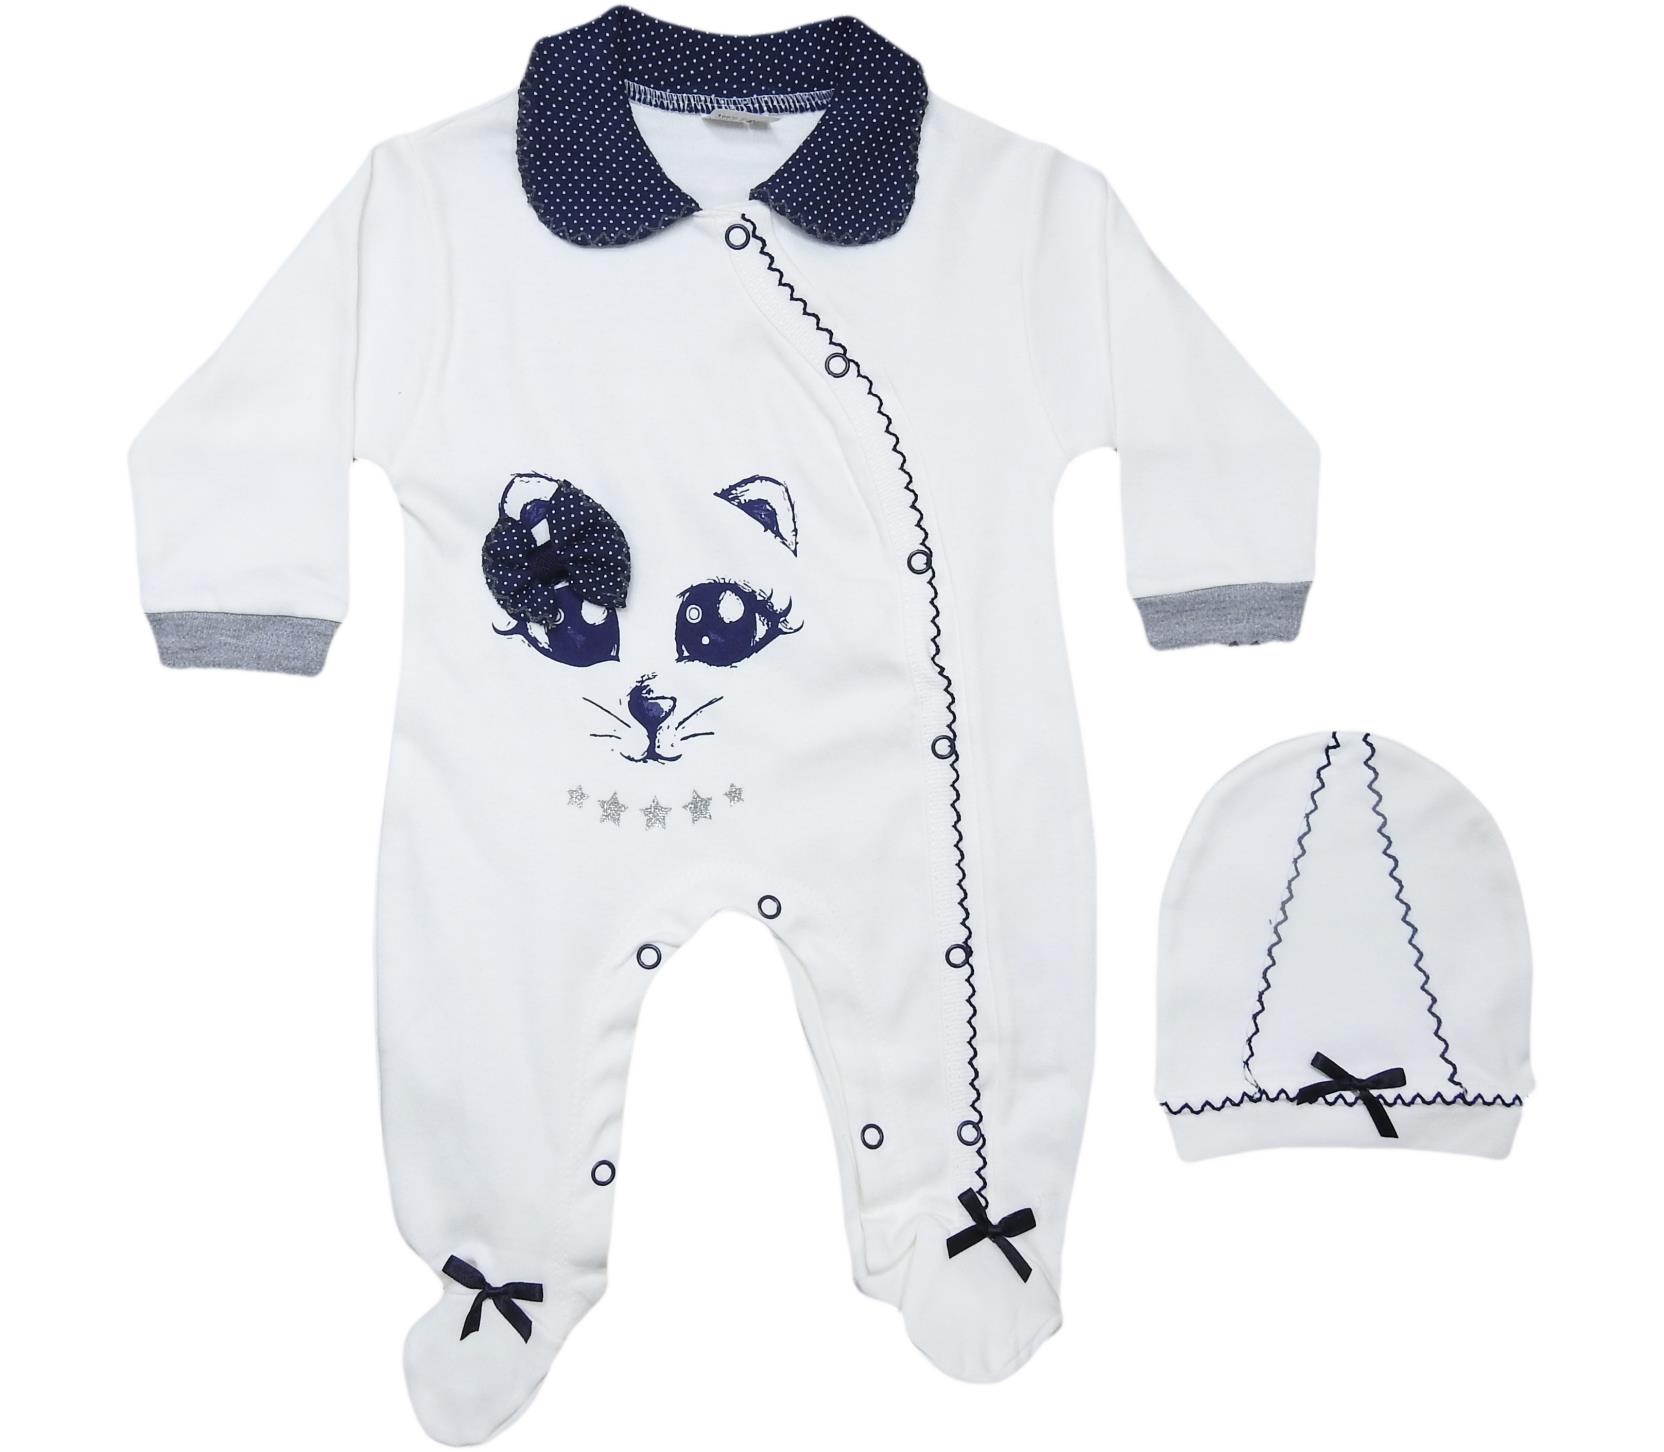 BERTO-490 Wholesale Baby Romper With Embroidery for newborns 3-9 Month